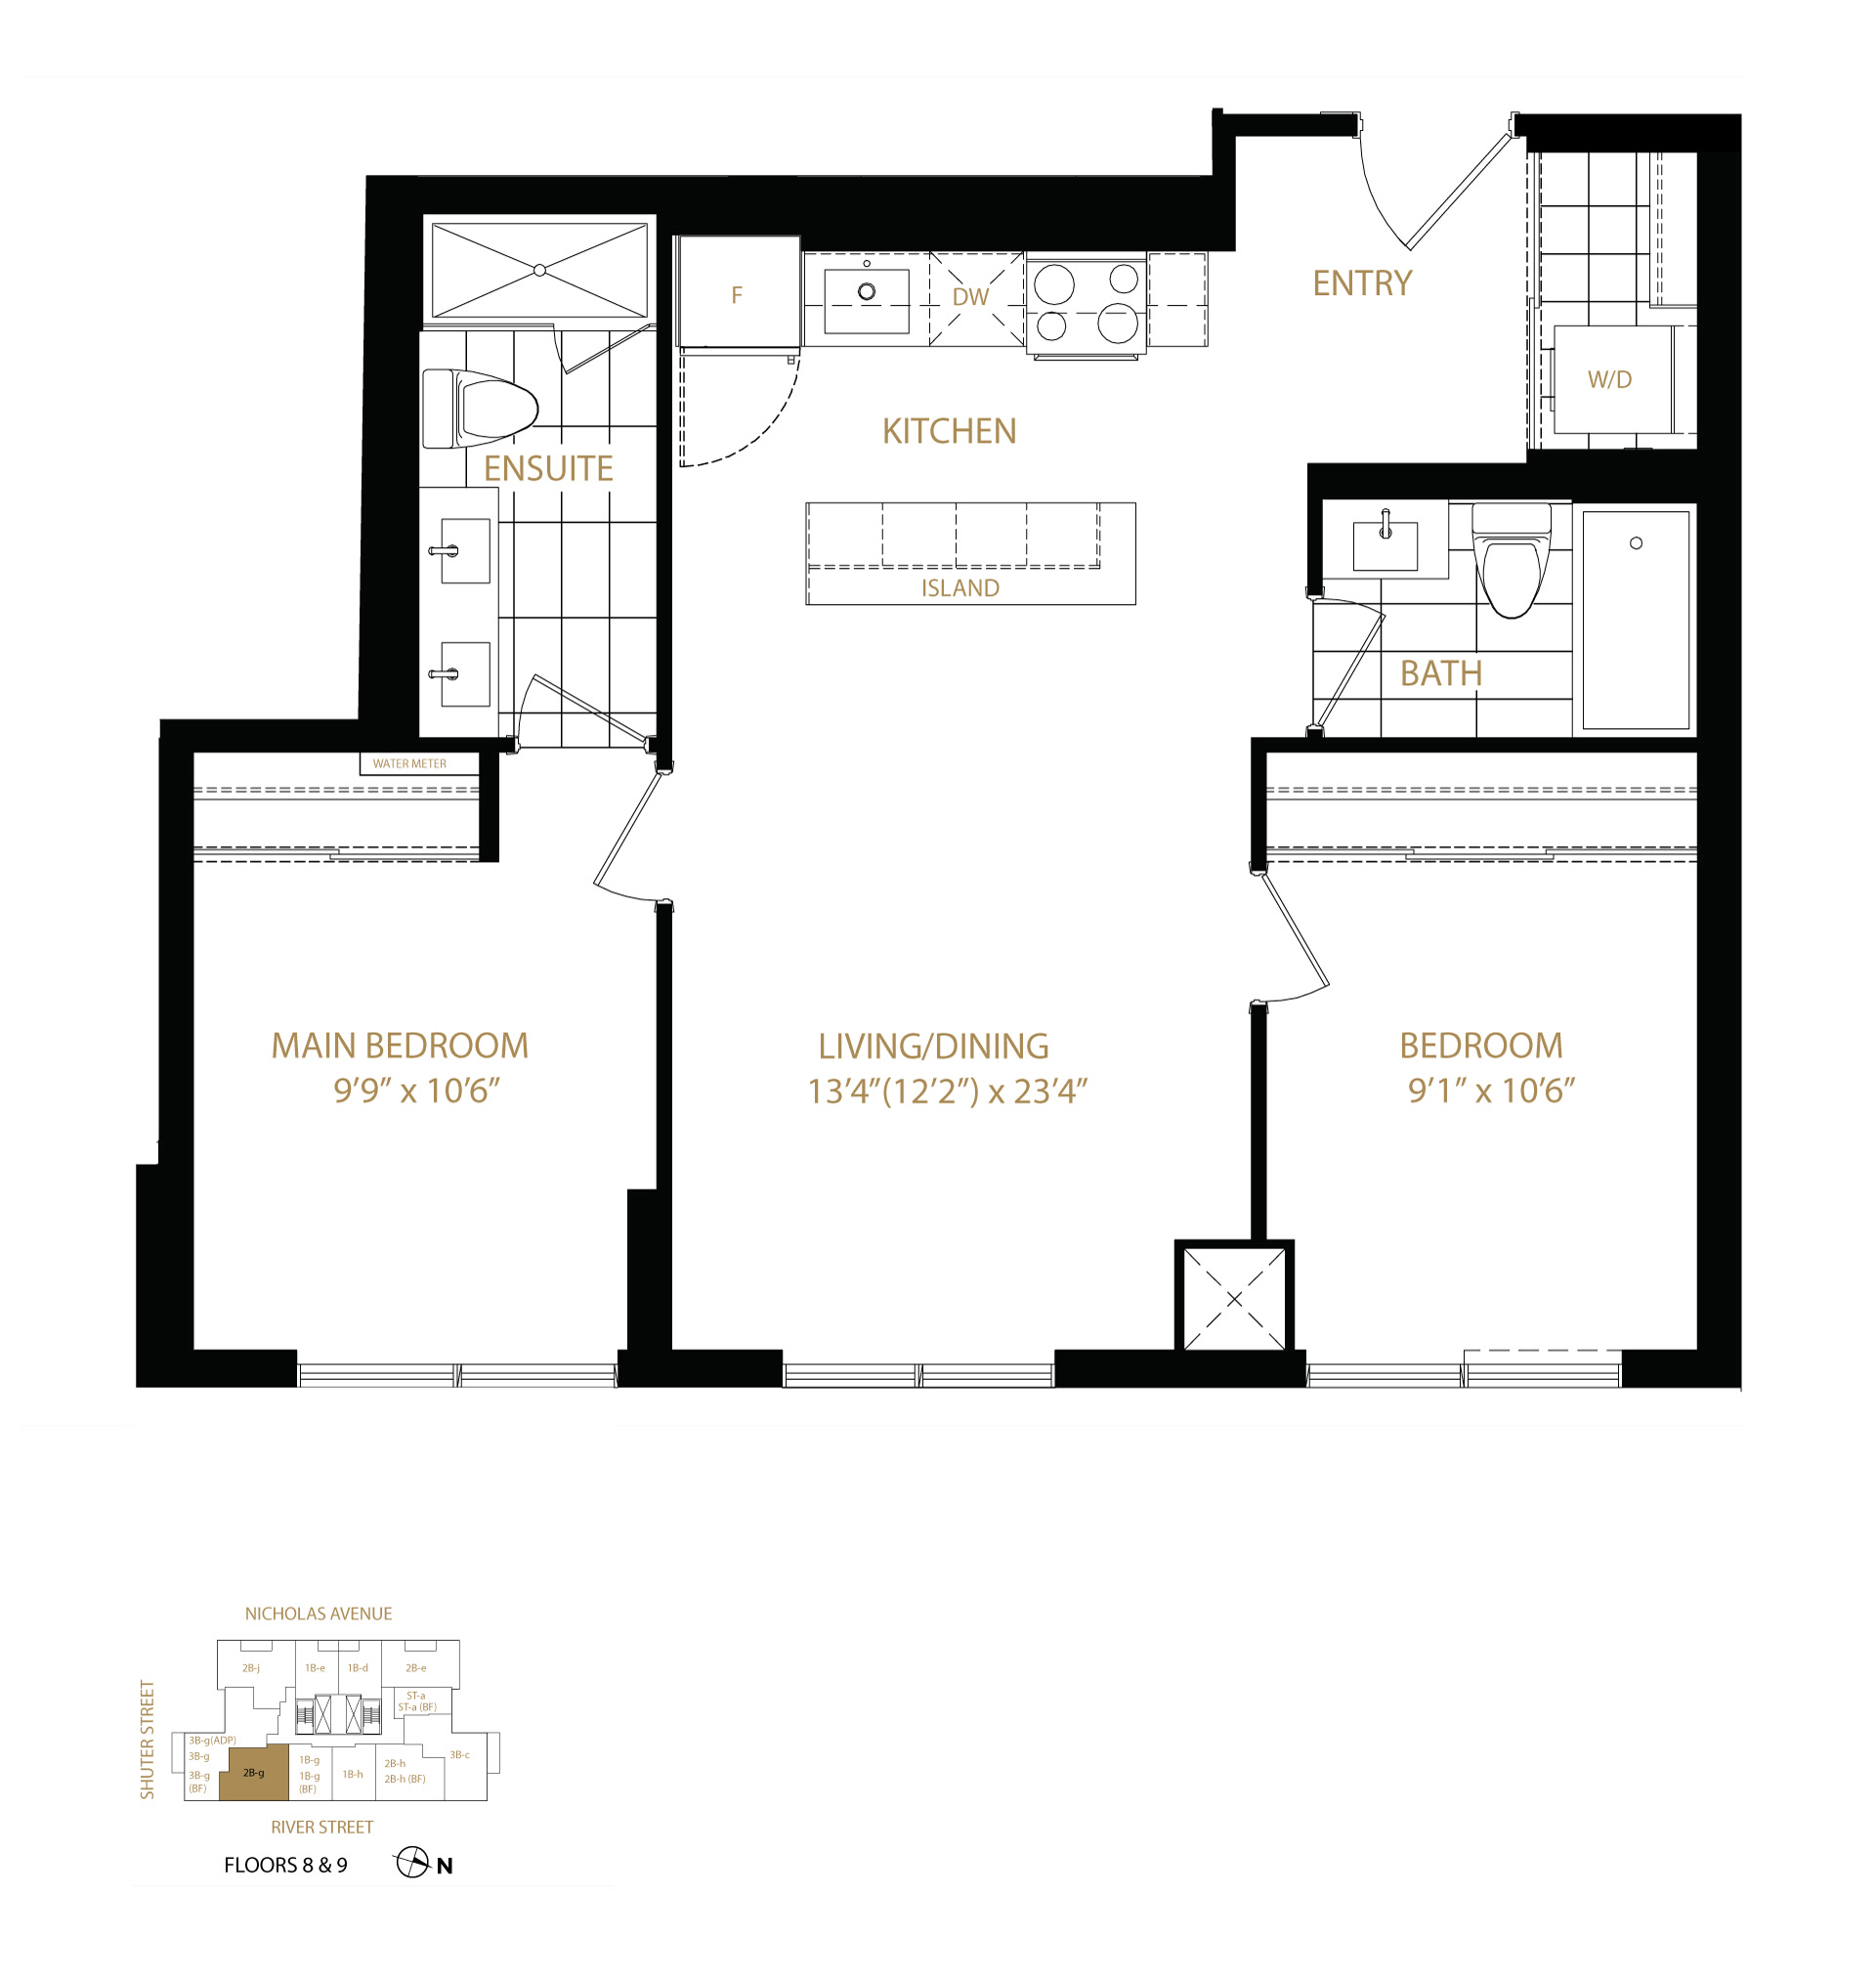 An image of the apartment layout.